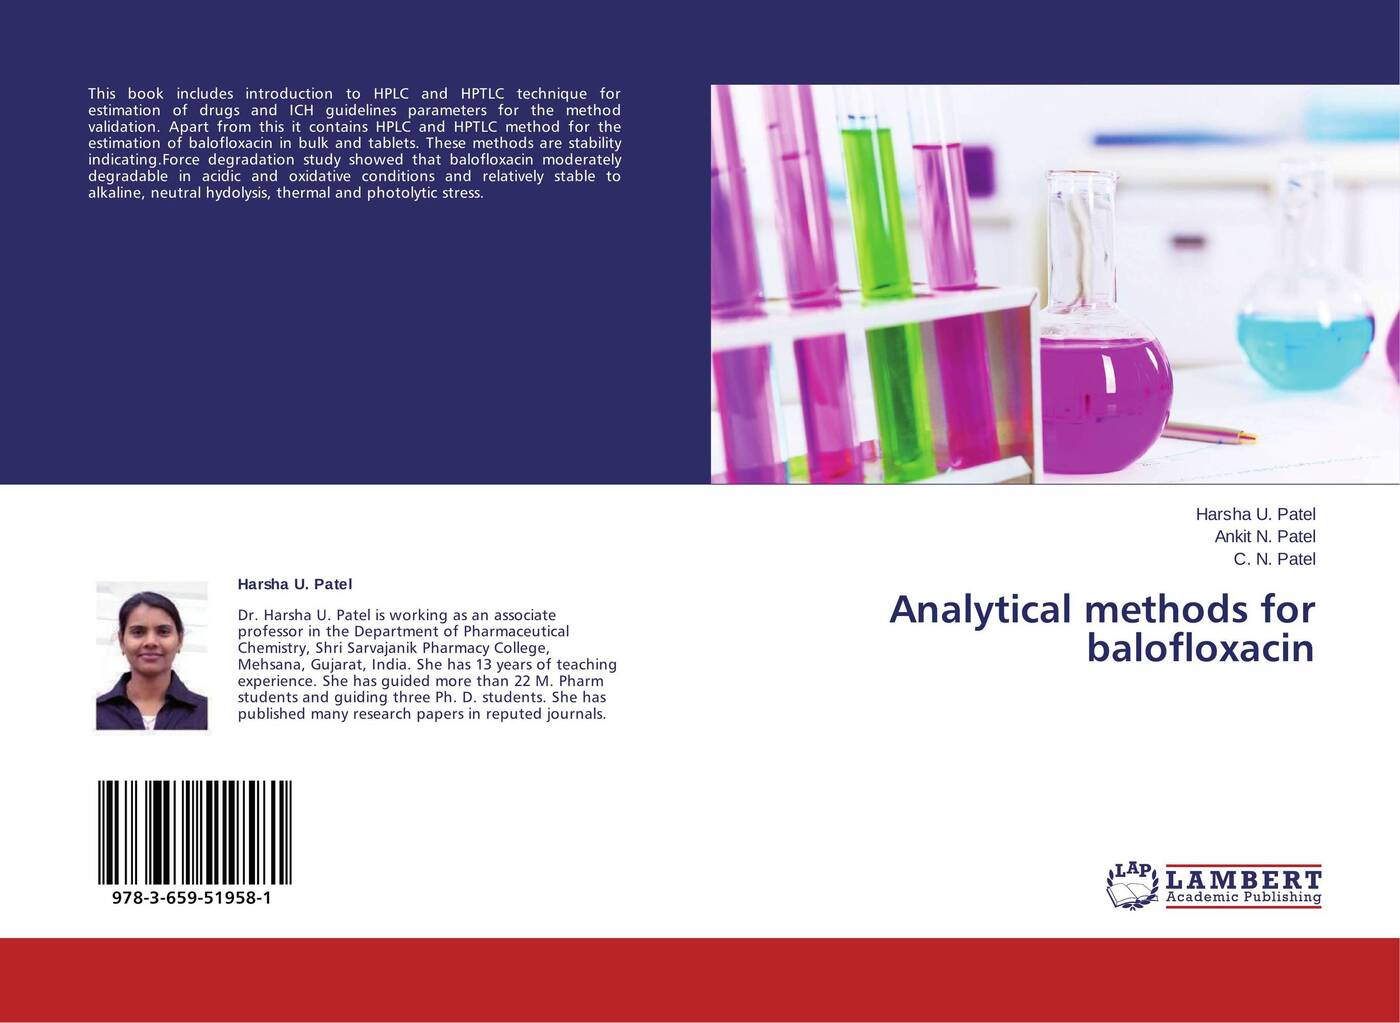 где купить Harsha U. Patel,Ankit N. Patel and C. N. Patel Analytical methods for balofloxacin недорого с доставкой